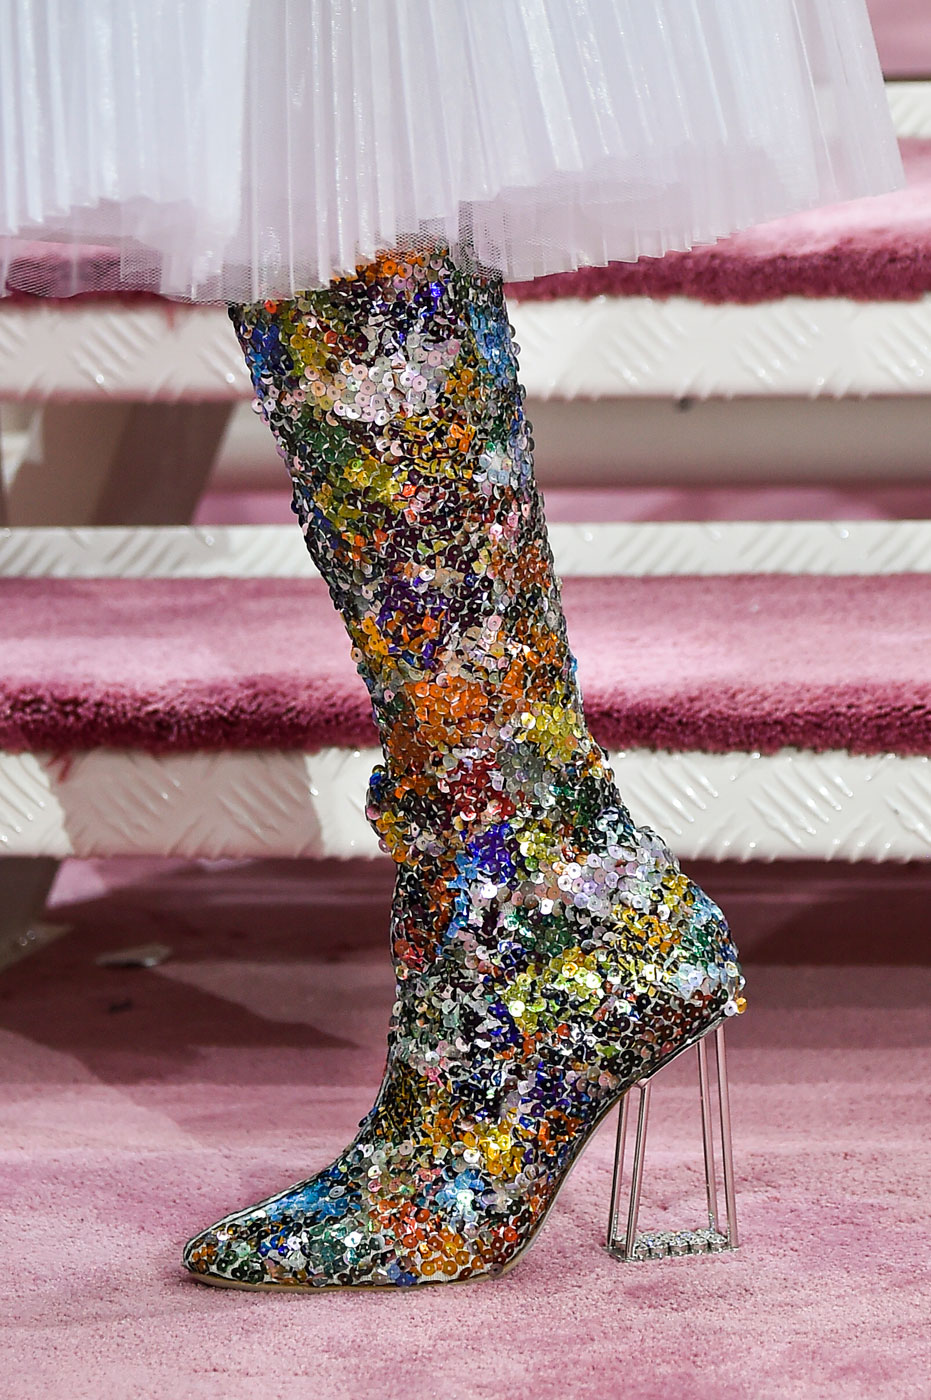 Christian-Dior-fashion-runway-show-close-ups-haute-couture-paris-spring-summer-2015-the-impression-127